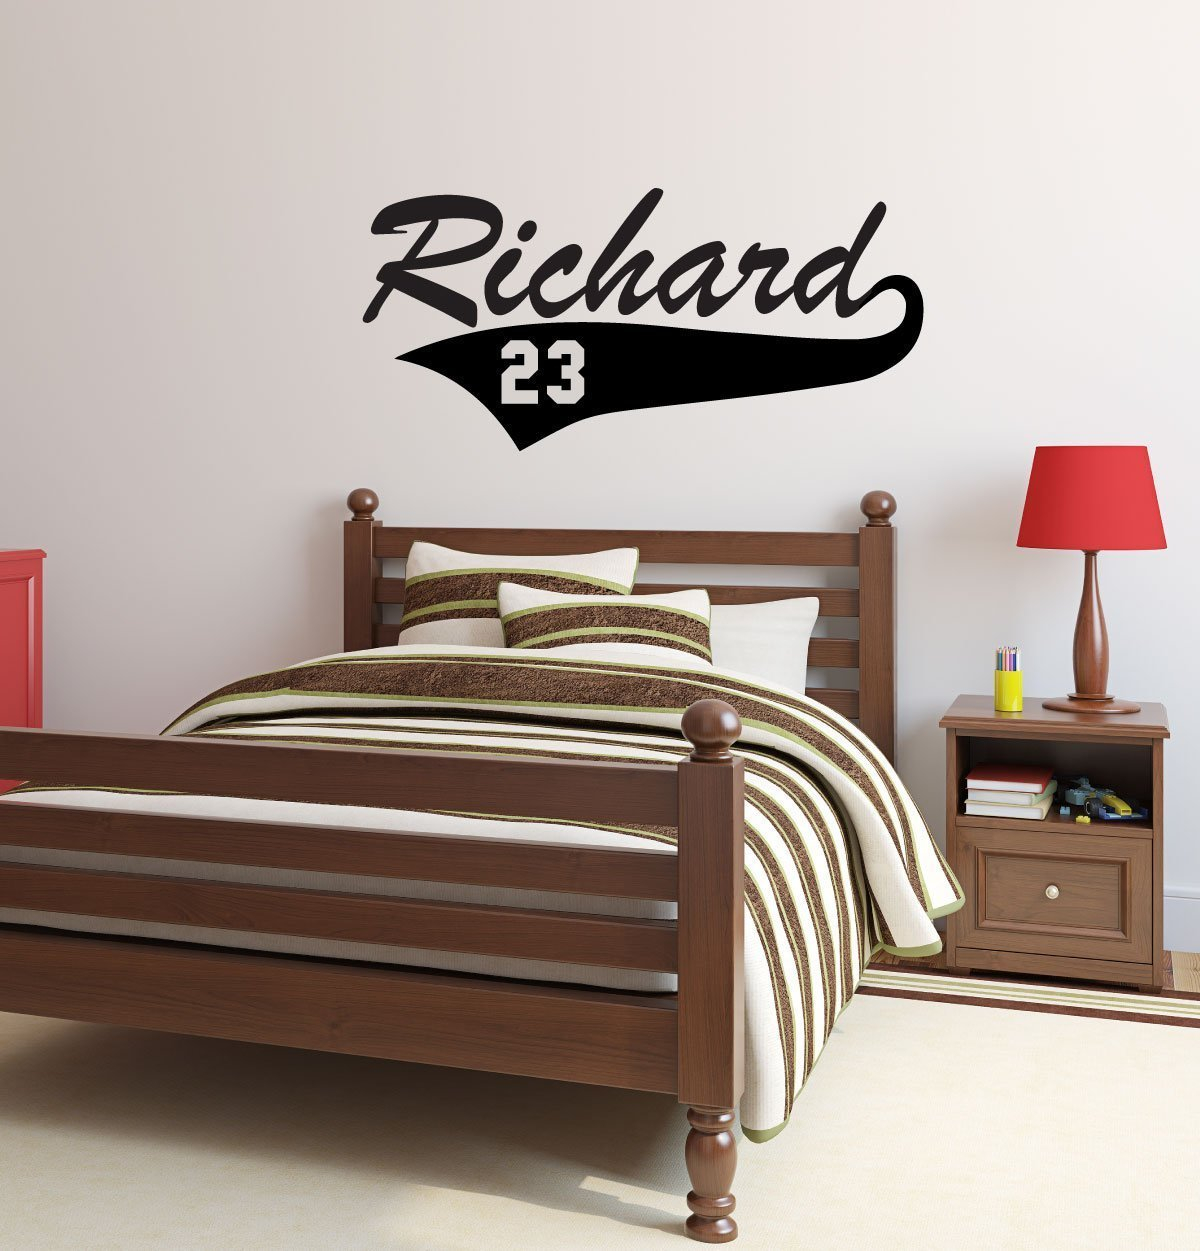 baseball player wall decals personalized player name and